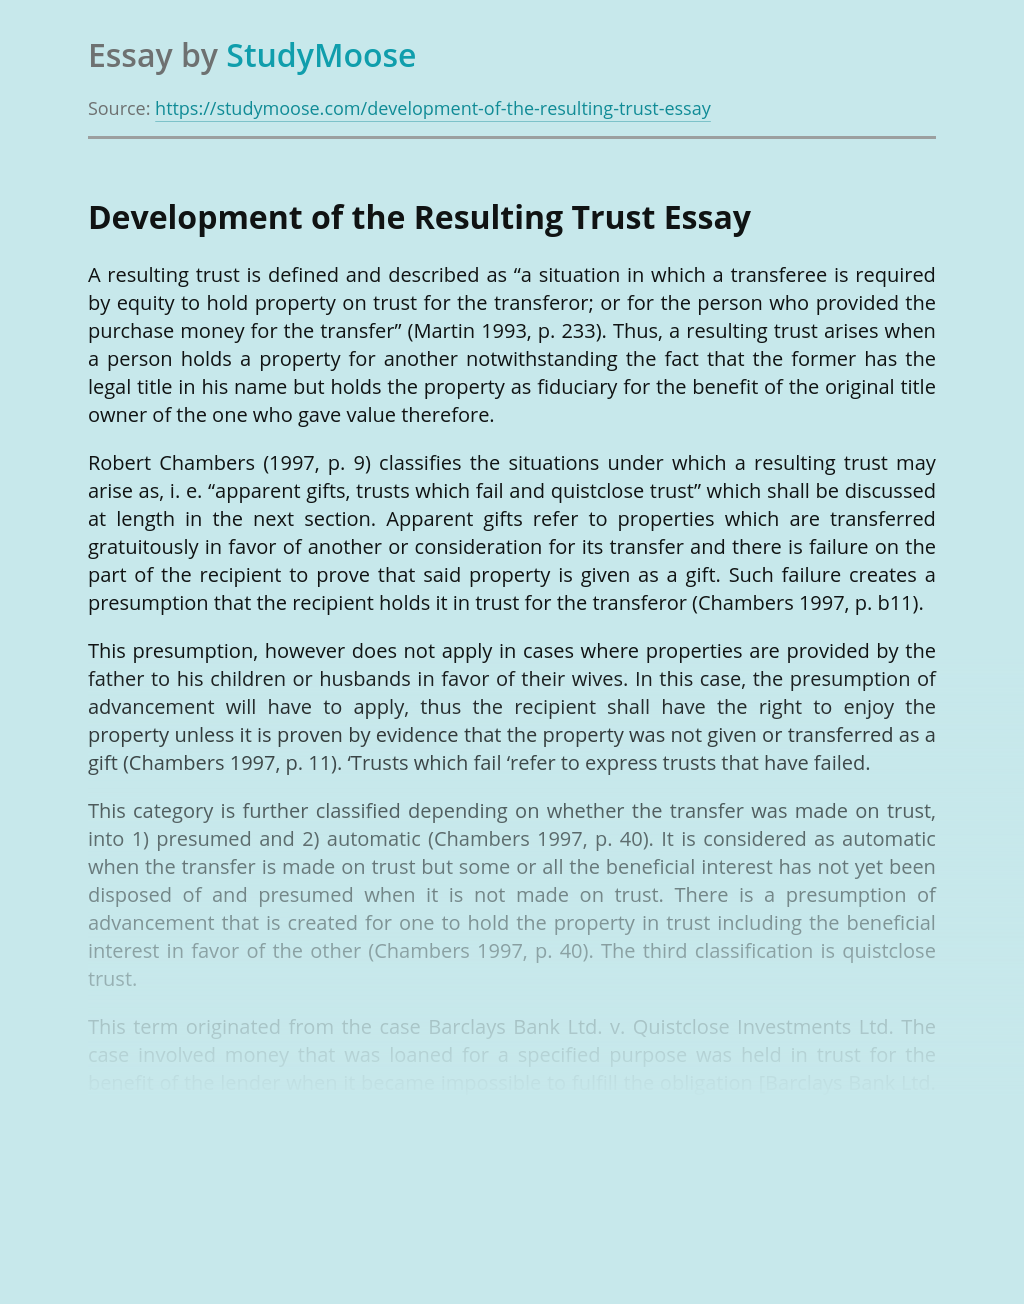 Development of the Resulting Trust